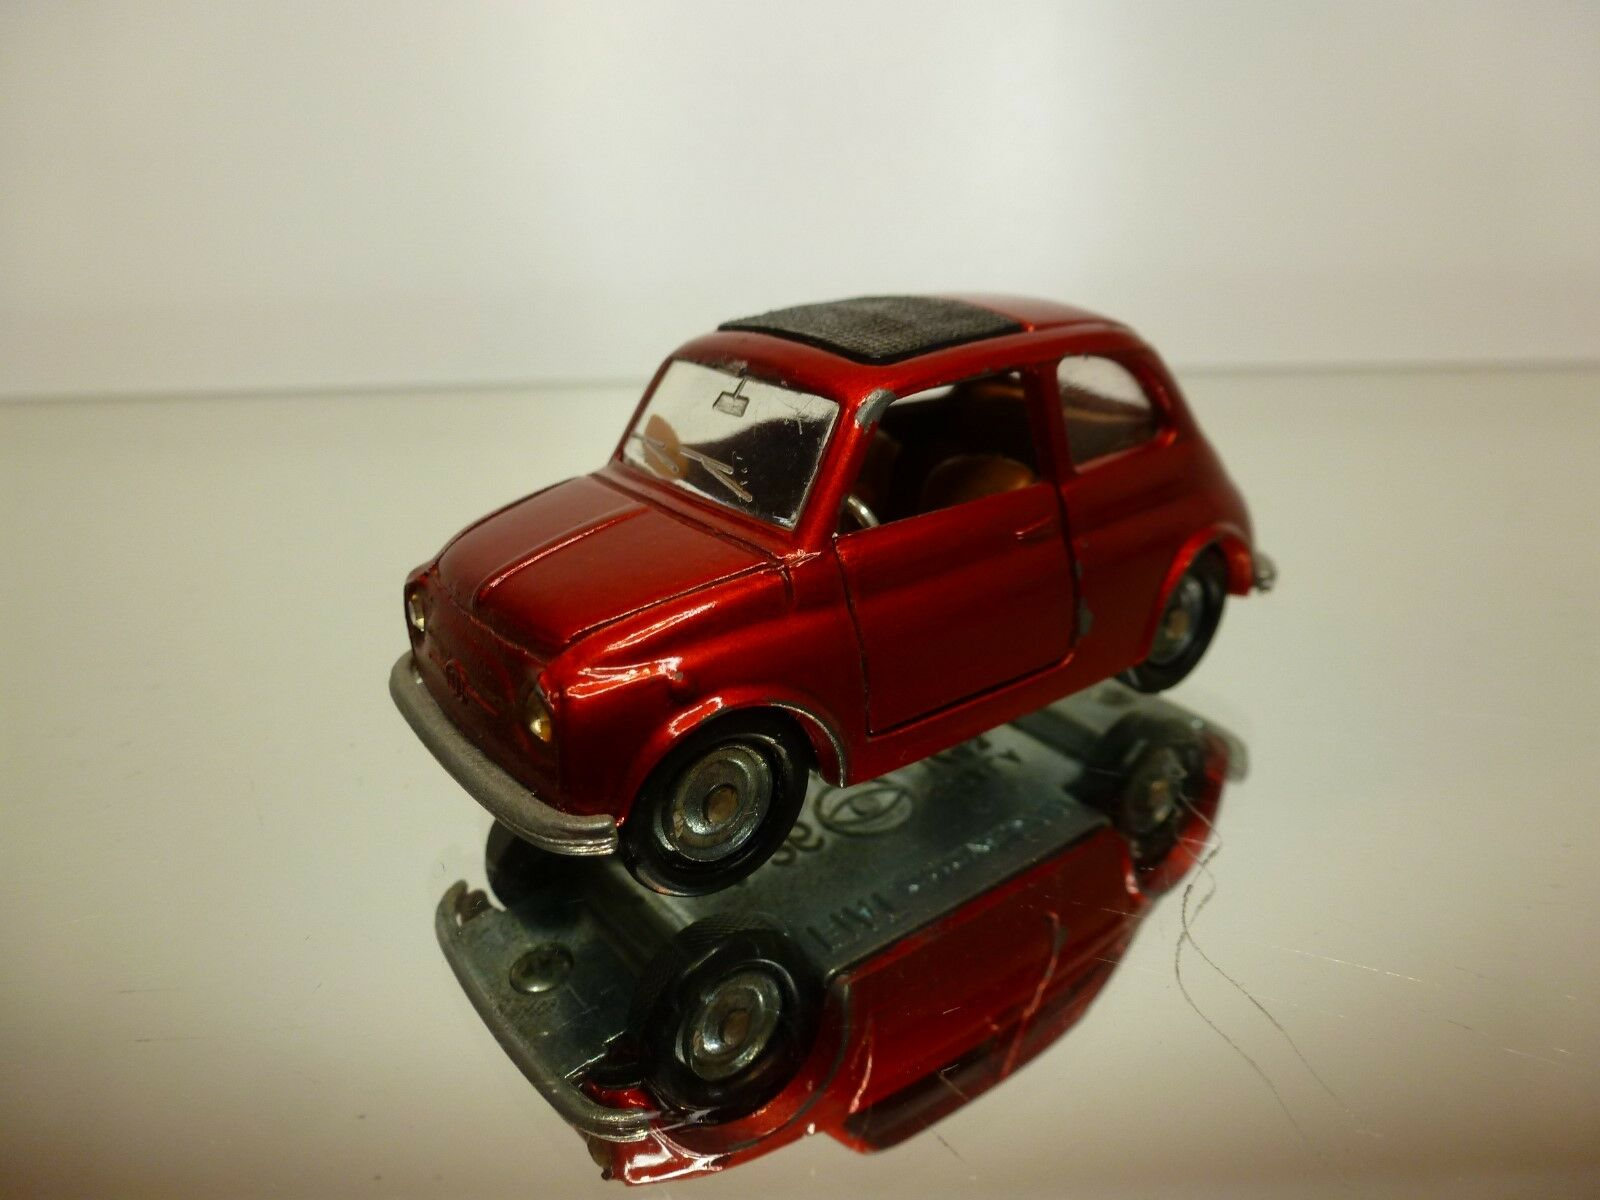 MEBETOYS  1 43  - FIAT 500   A-36   ABARTH RED  - VERY RARE  - GOOD CONDITION